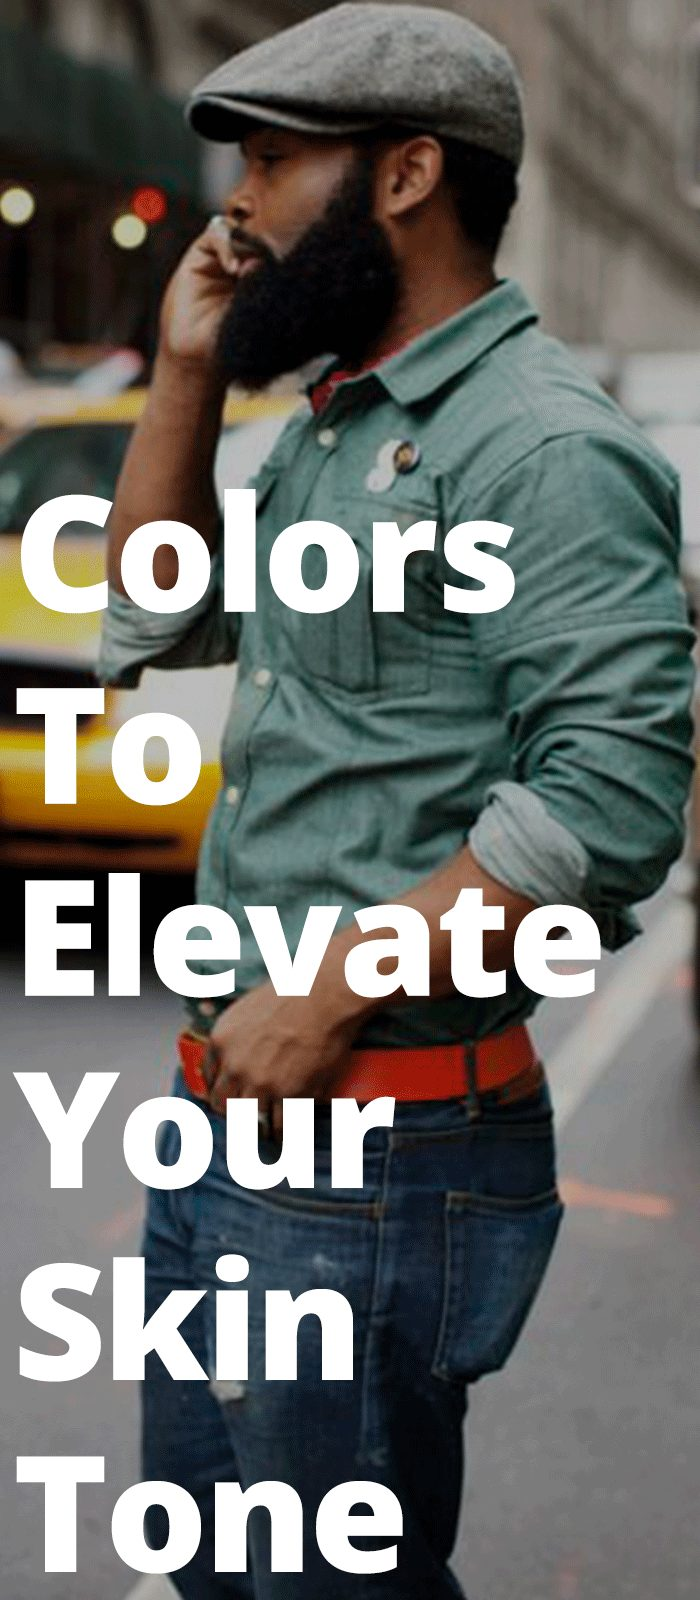 Colors To Elevate Your Skin Tone